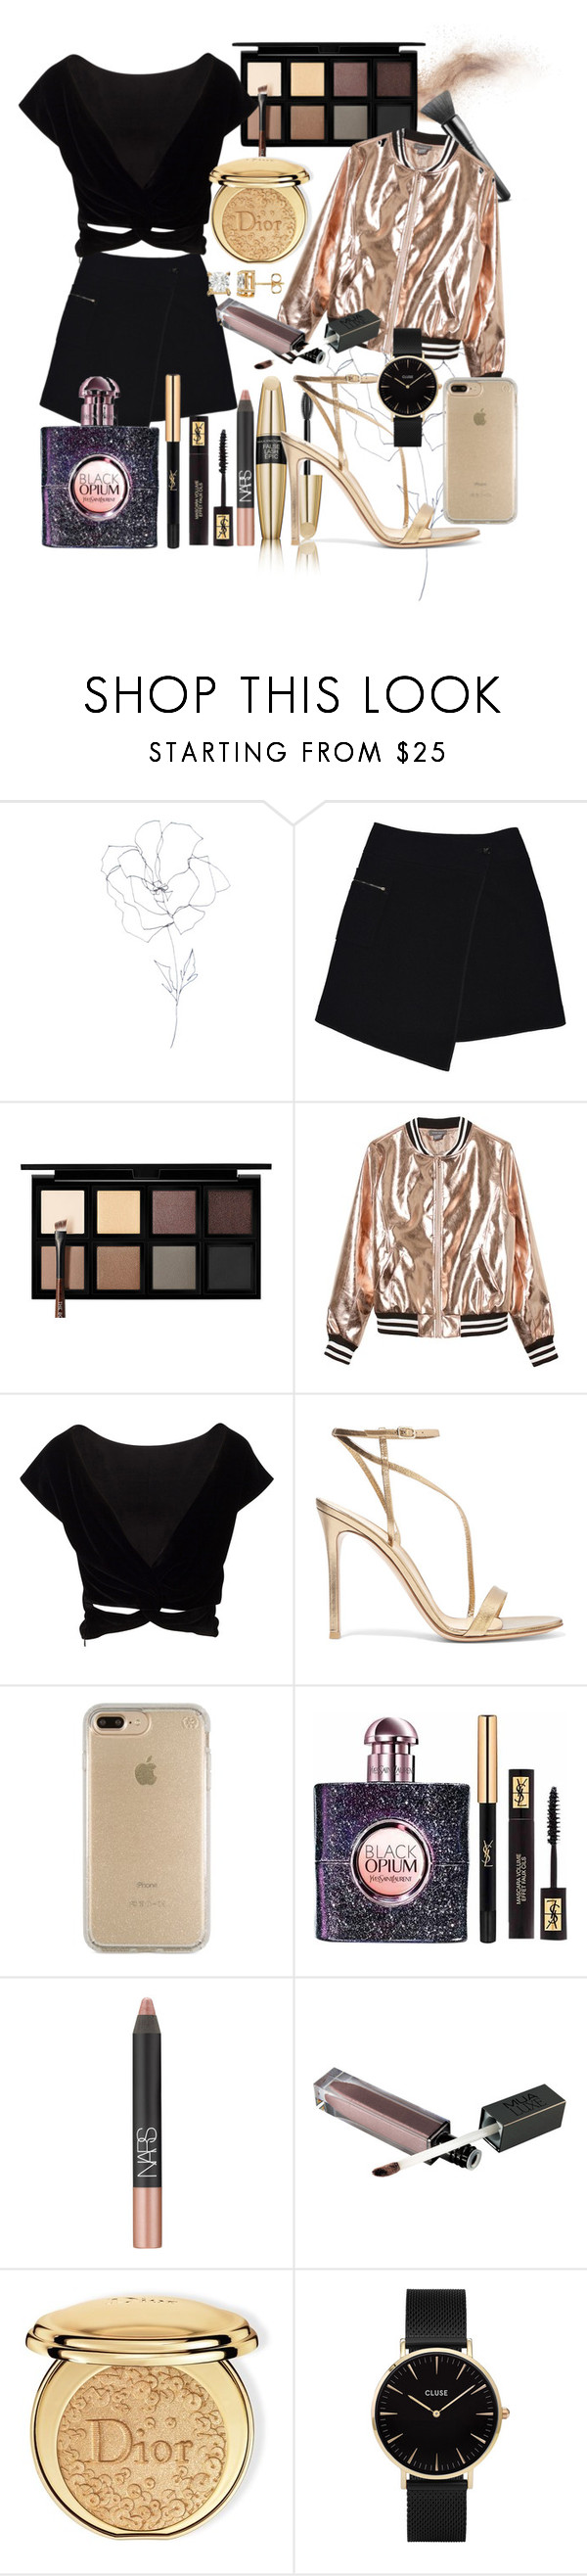 """""""Untitled #52"""" by marianayasmin on Polyvore featuring Blume, MARC CAIN, Victoria's Secret, Down to Earth, Sans Souci, Gianvito Rossi, Speck, Yves Saint Laurent, NARS Cosmetics and Christian Dior"""